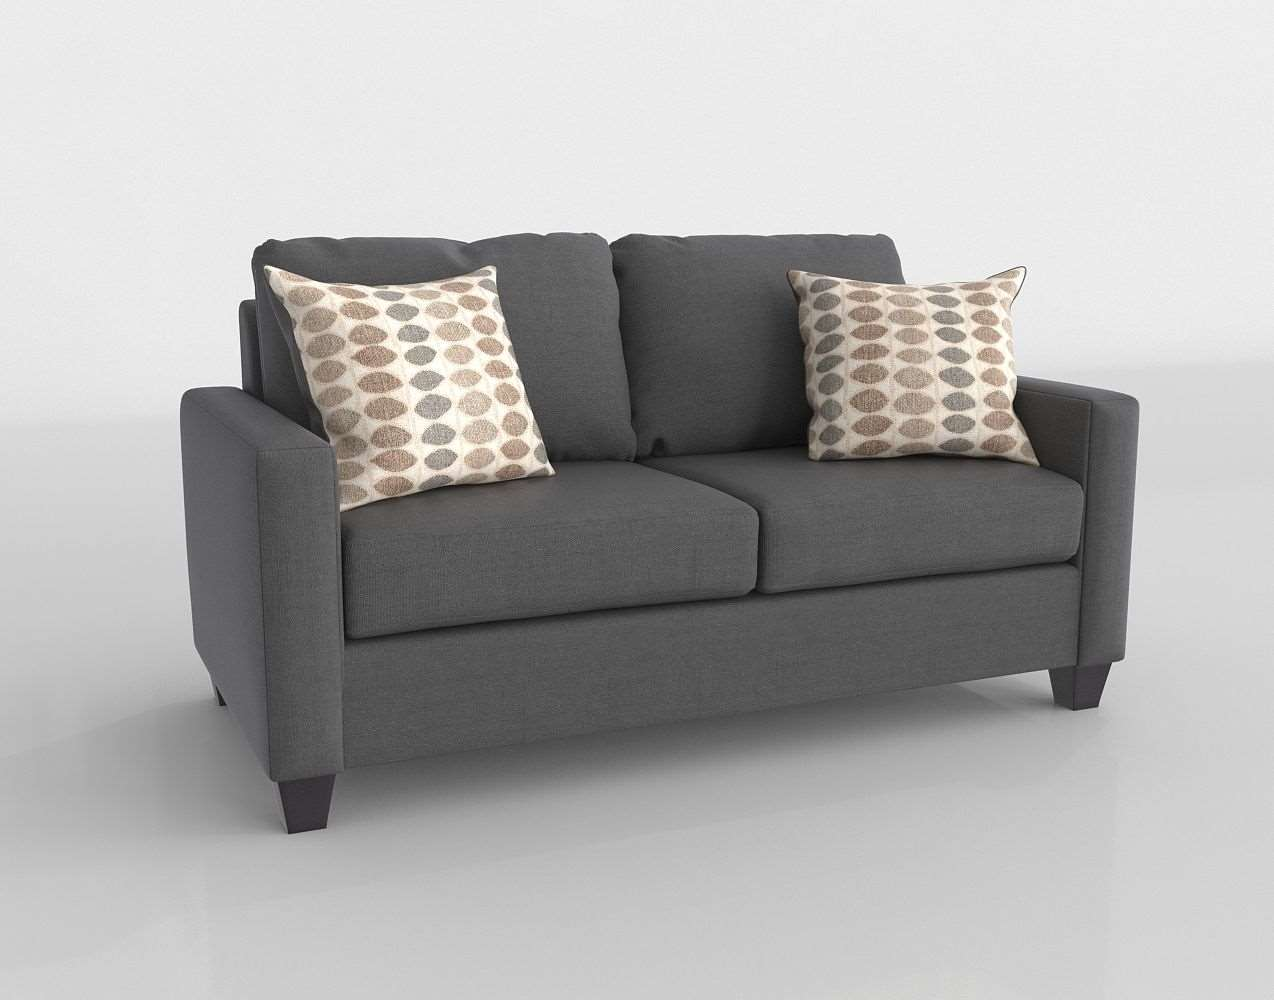 Sleeper Sofa American Furniture